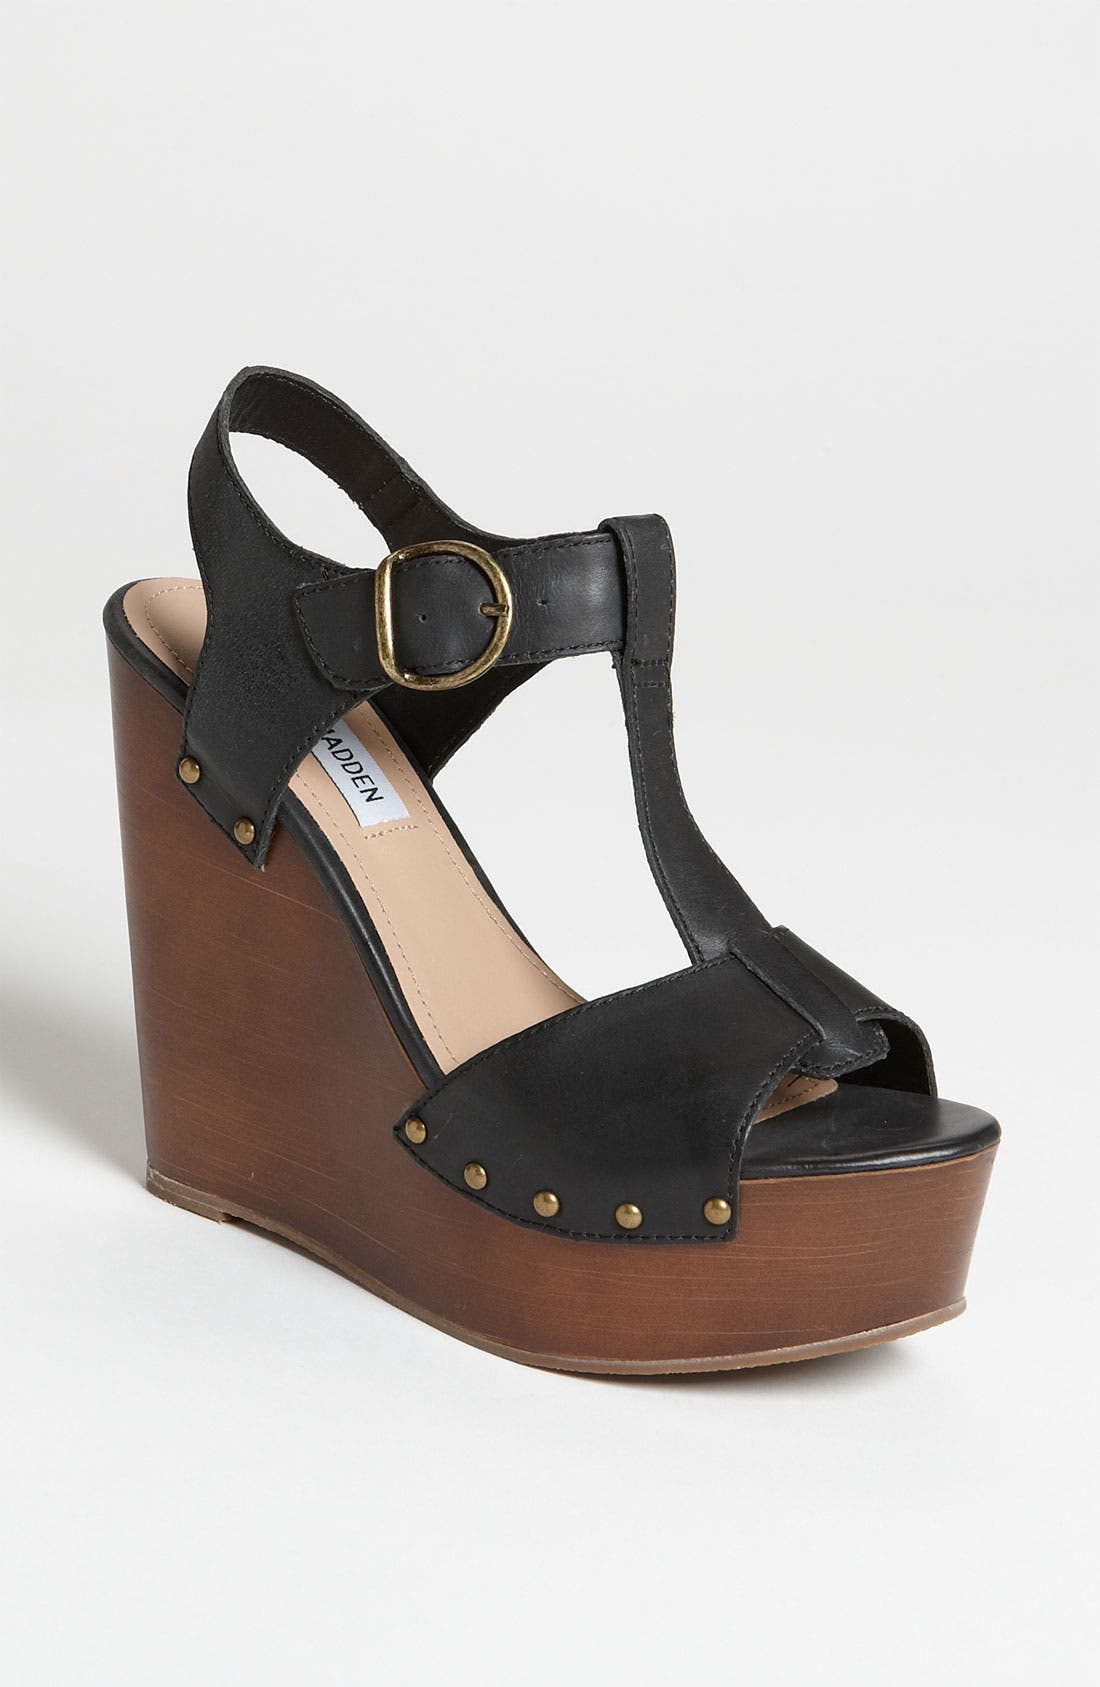 Main Image - Steve Madden 'Wyliee' Sandal